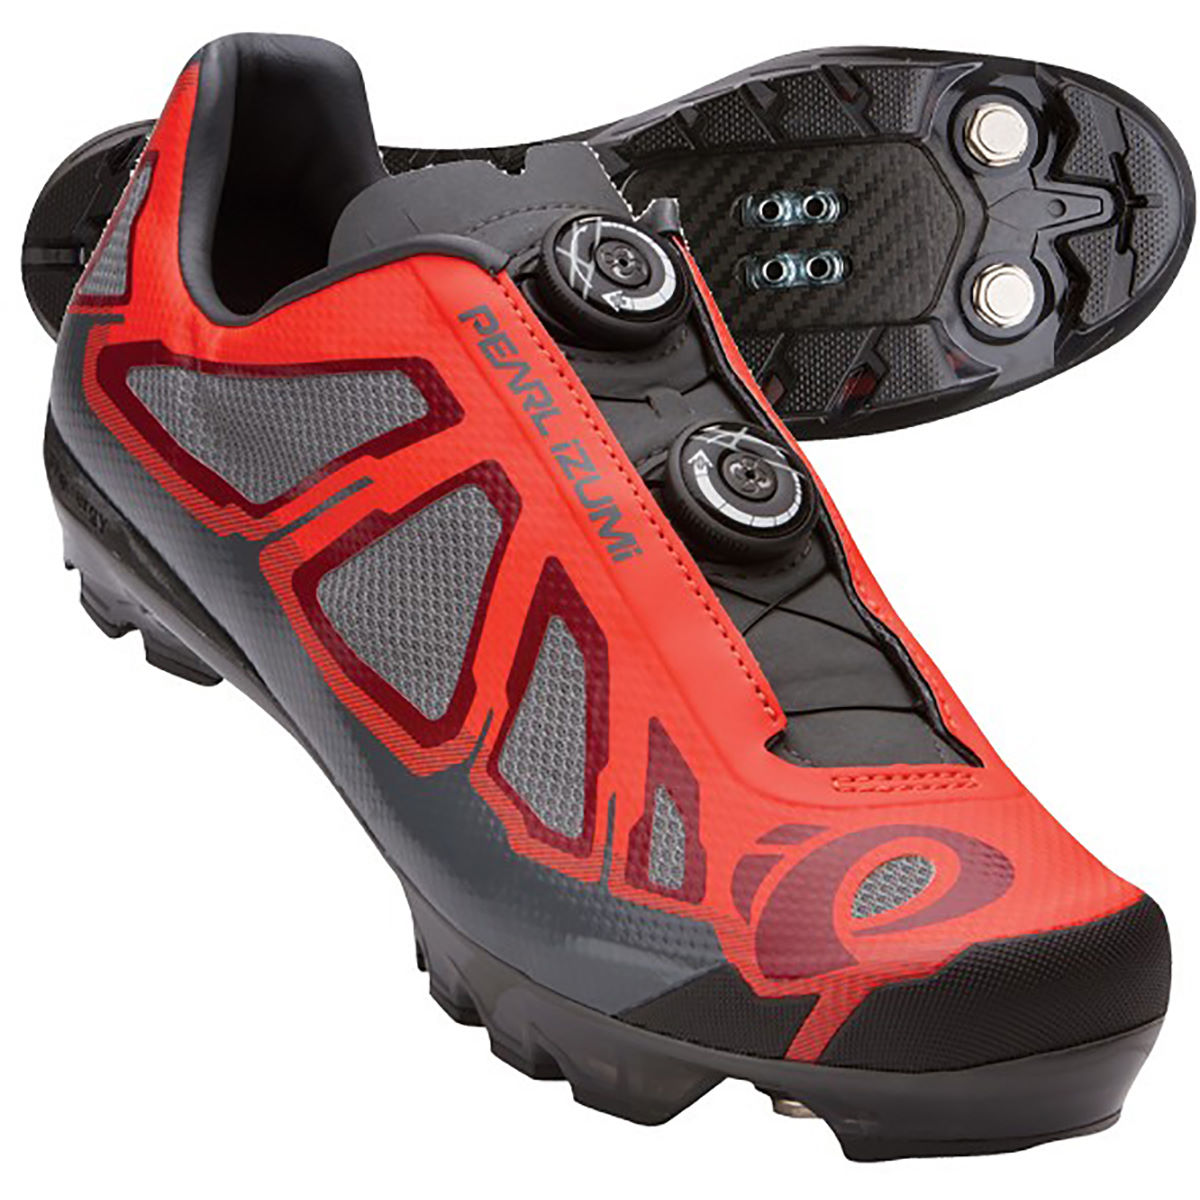 Pearl Izumi X Project   Bike Shoes Review